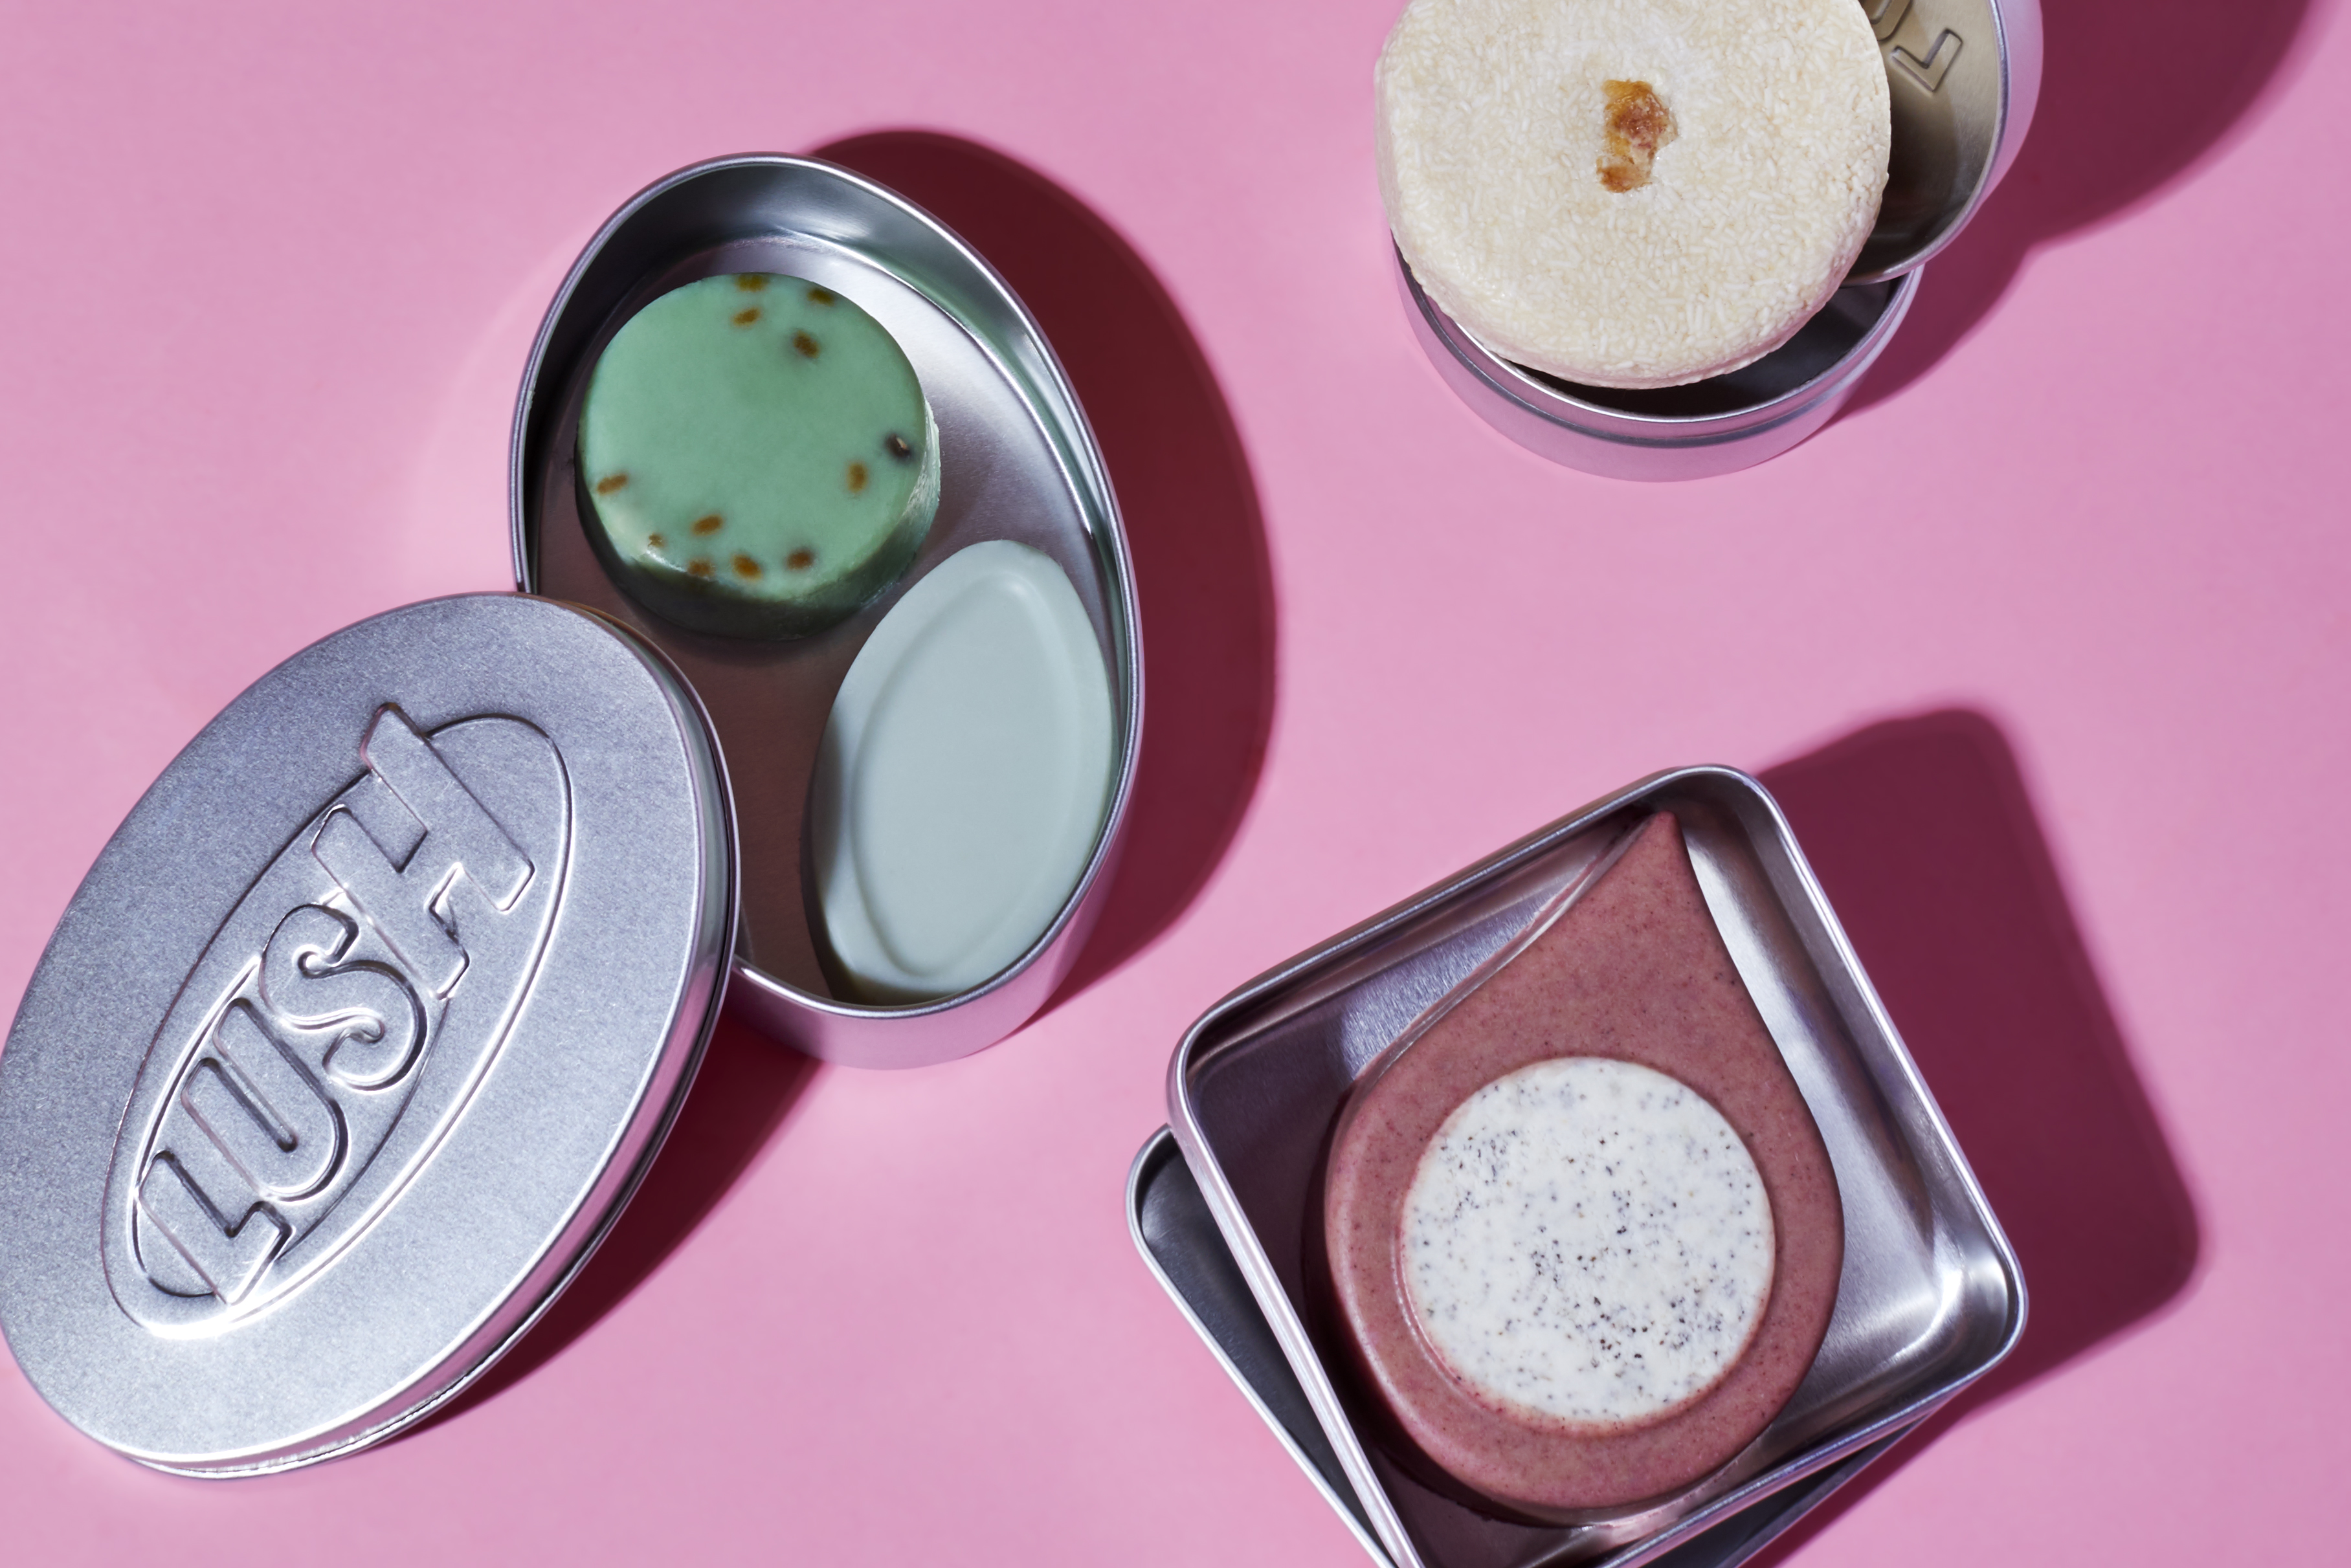 A naked shower oil, a naked cleanser, a naked facial oil and a shampoo bar are displayed in reusable metal tins.